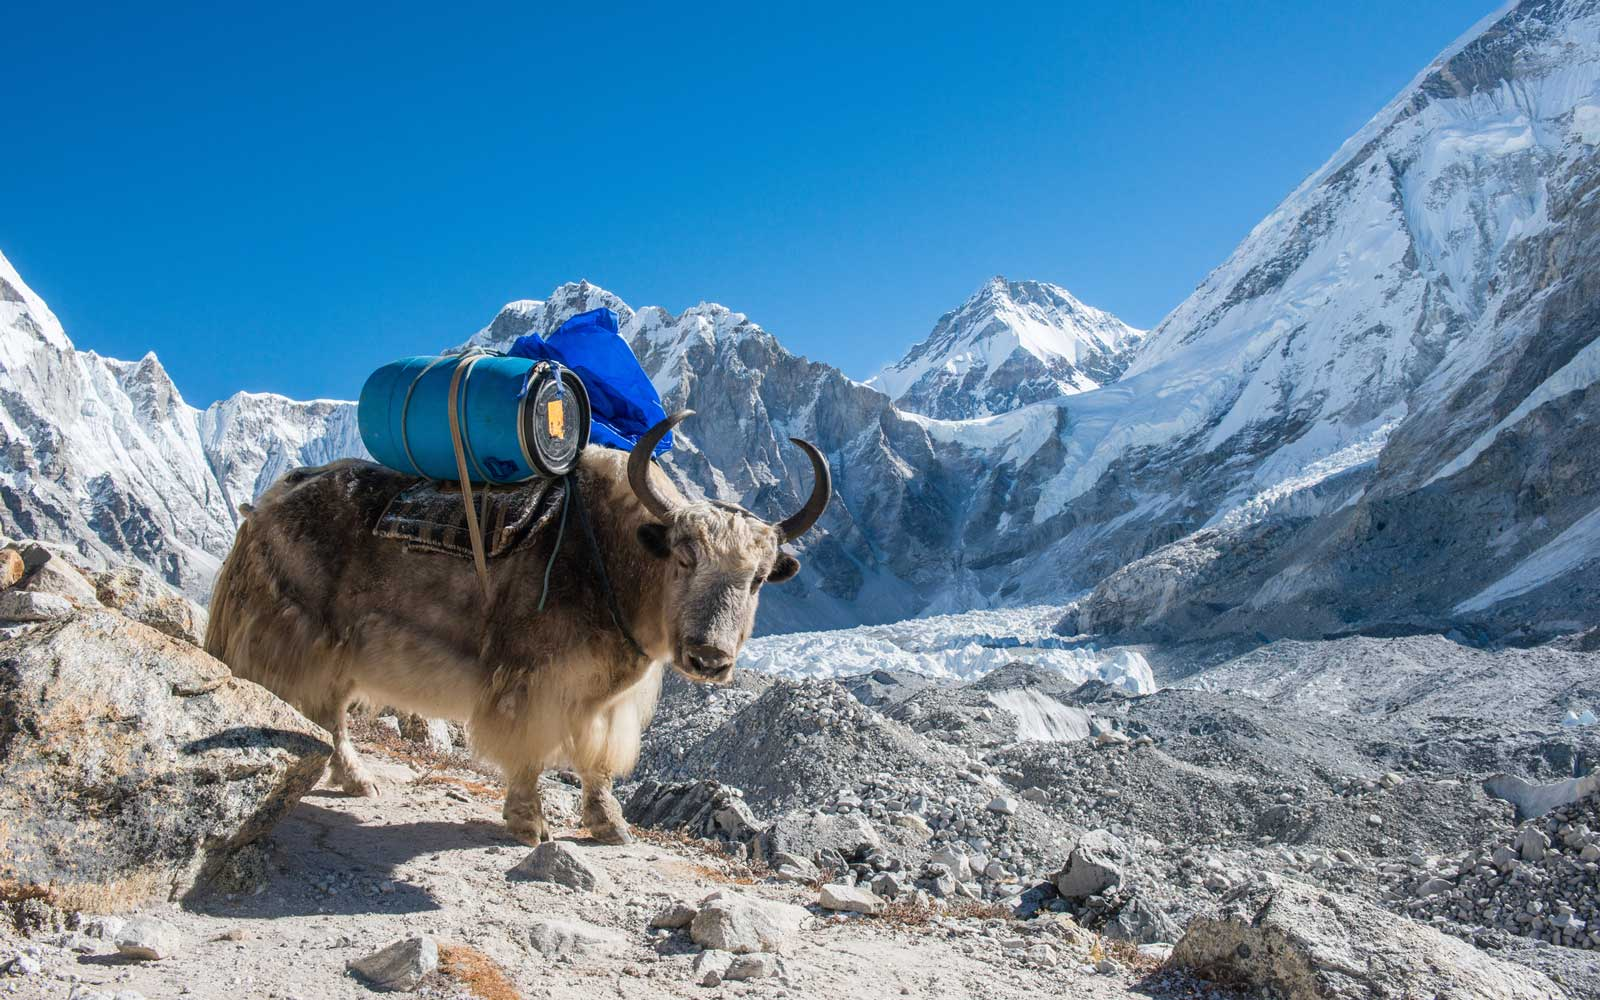 Nepal Bans Single-use Plastics on Mt. Everest After Removing 11 Tons of Trash